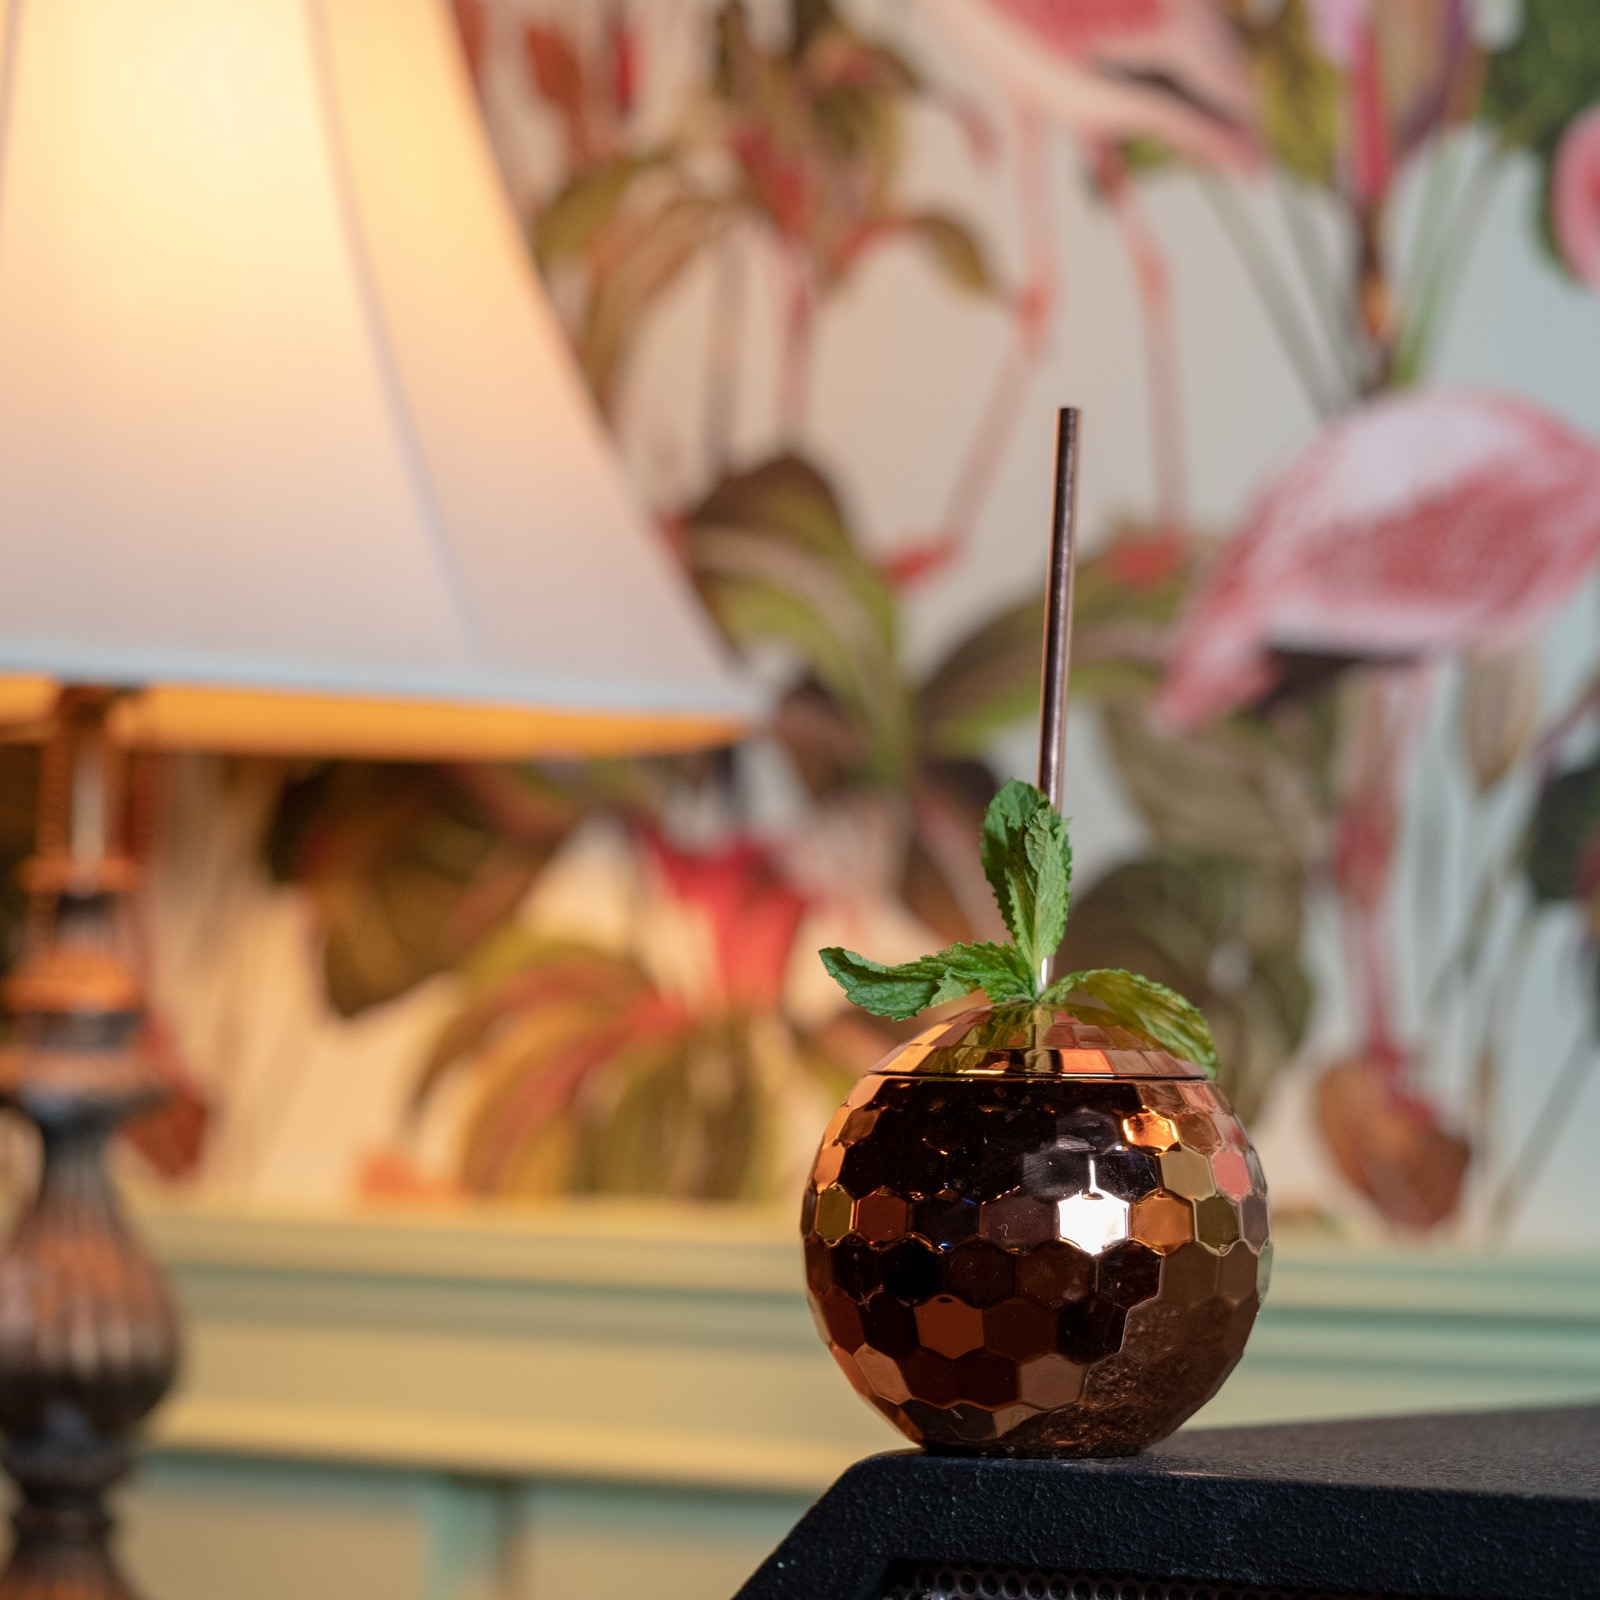 A disco ball cup with a metal straw on a table in front of a floral wallpapered wall